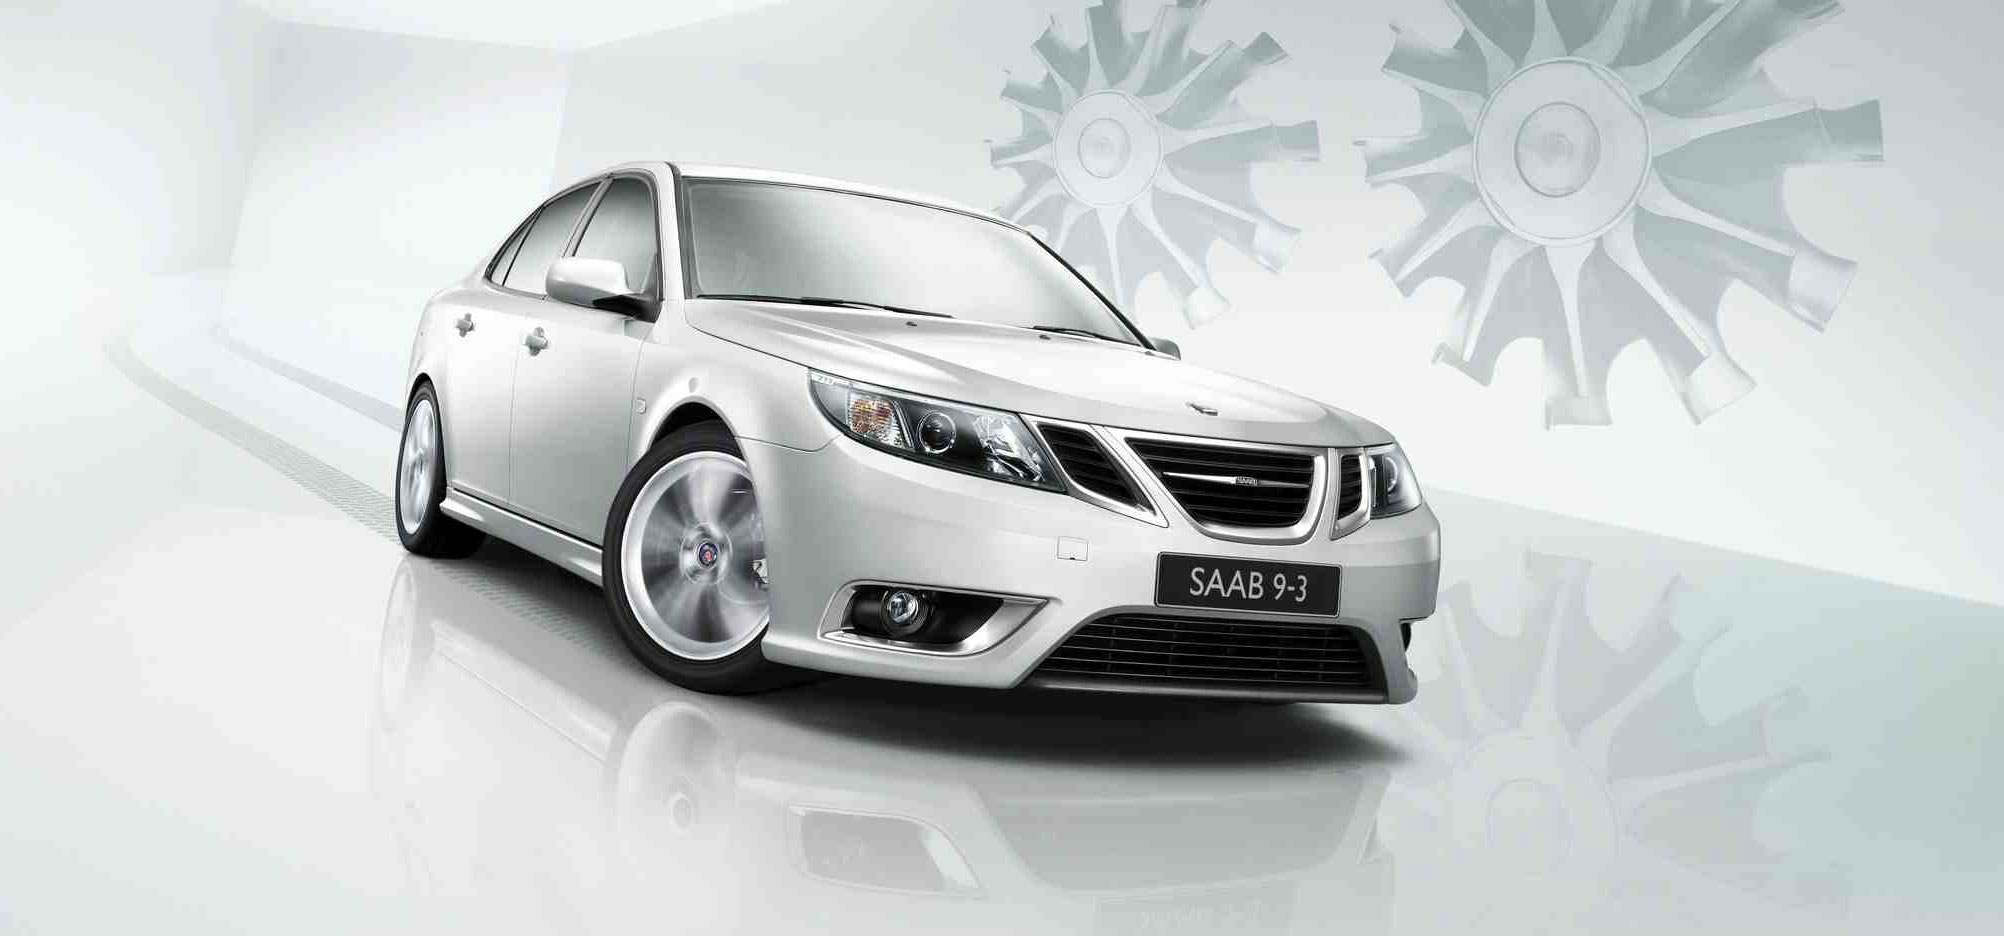 2011 saab 9 3 by hirsch review top speed. Black Bedroom Furniture Sets. Home Design Ideas